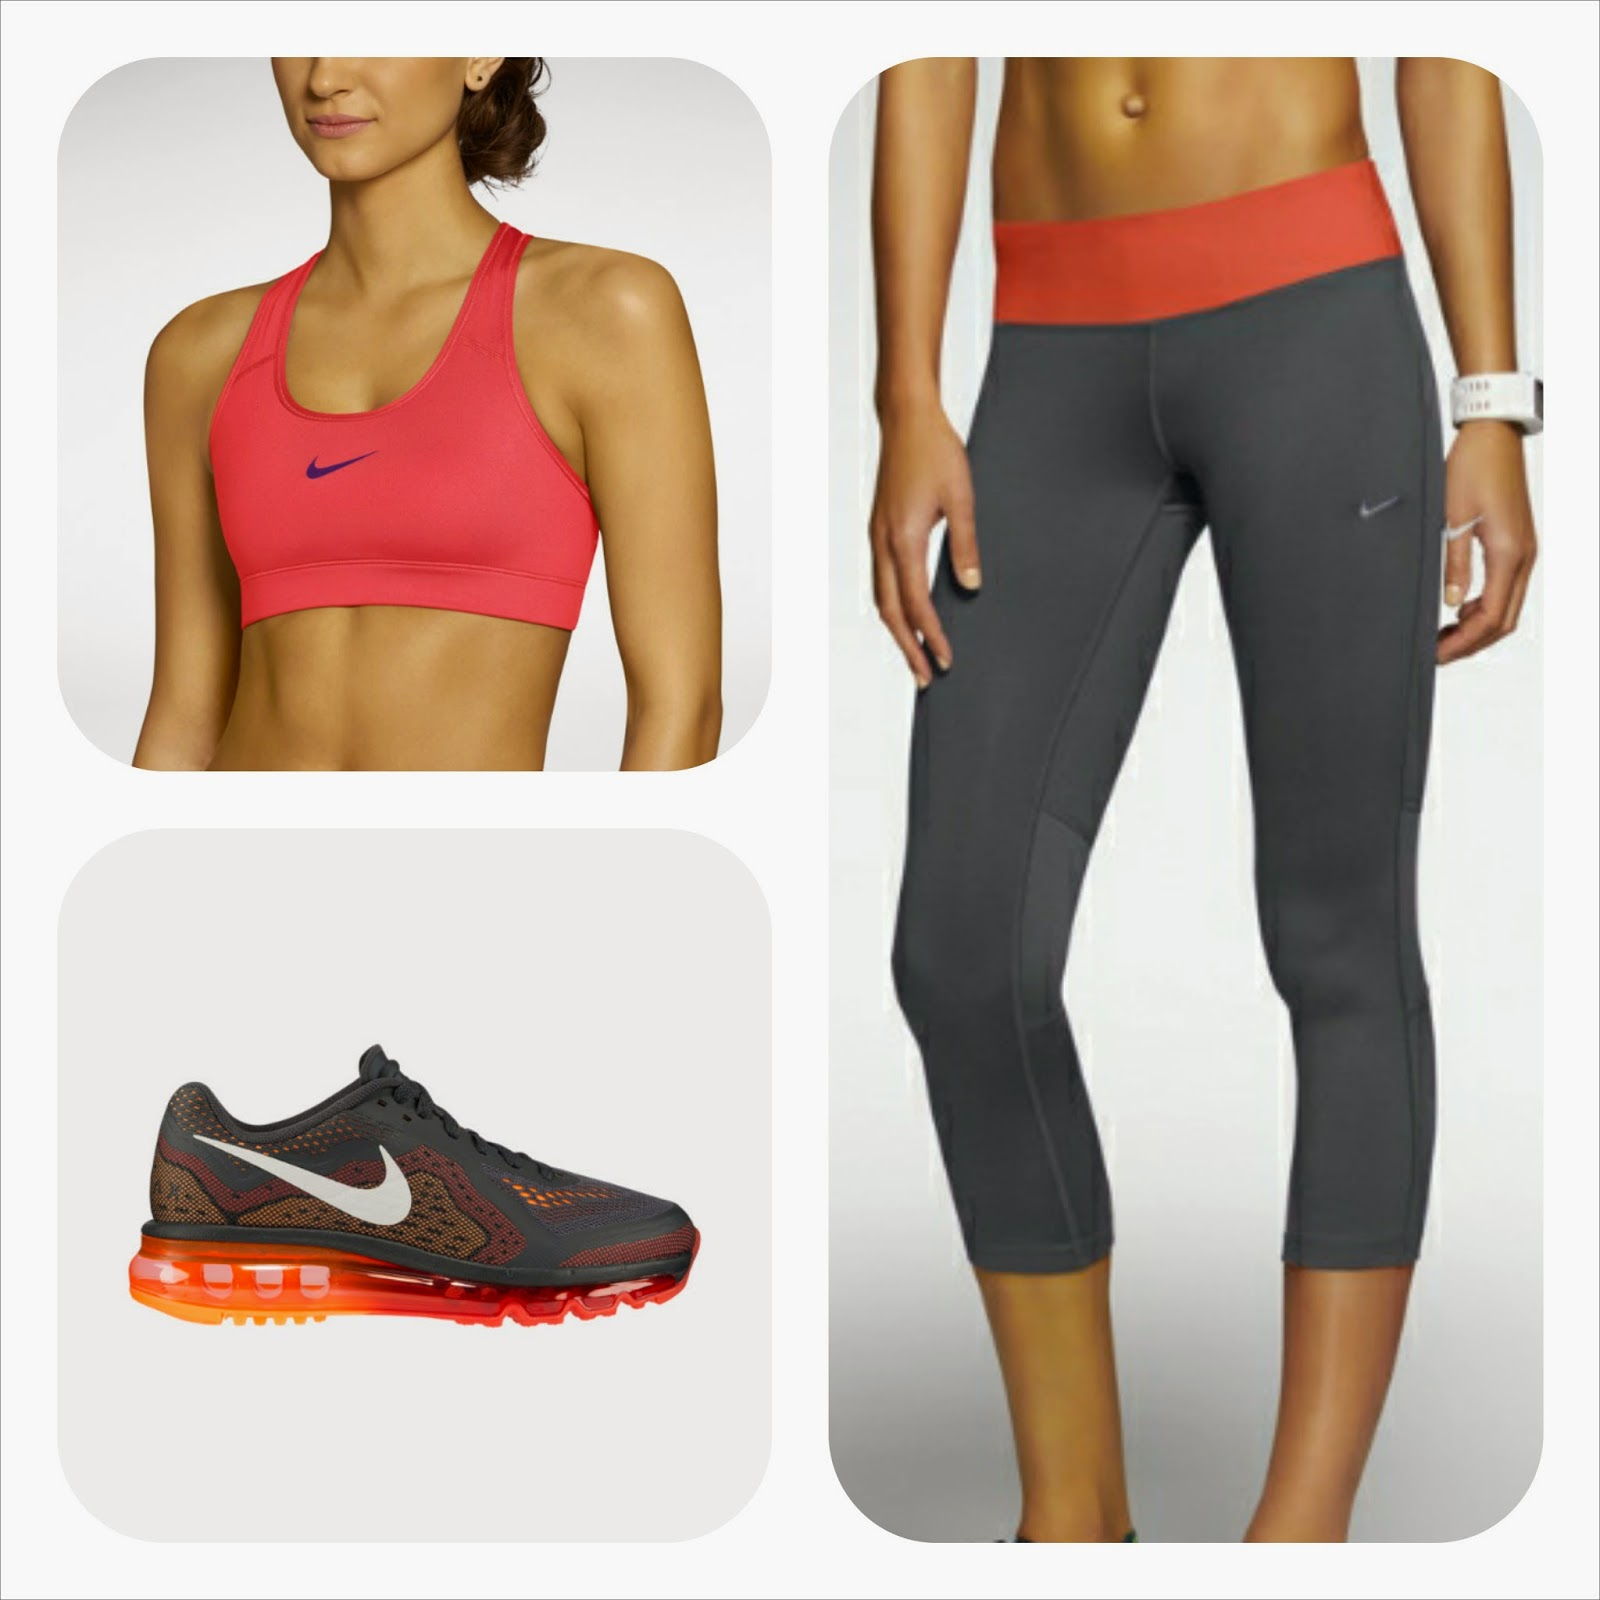 Workout Style #2